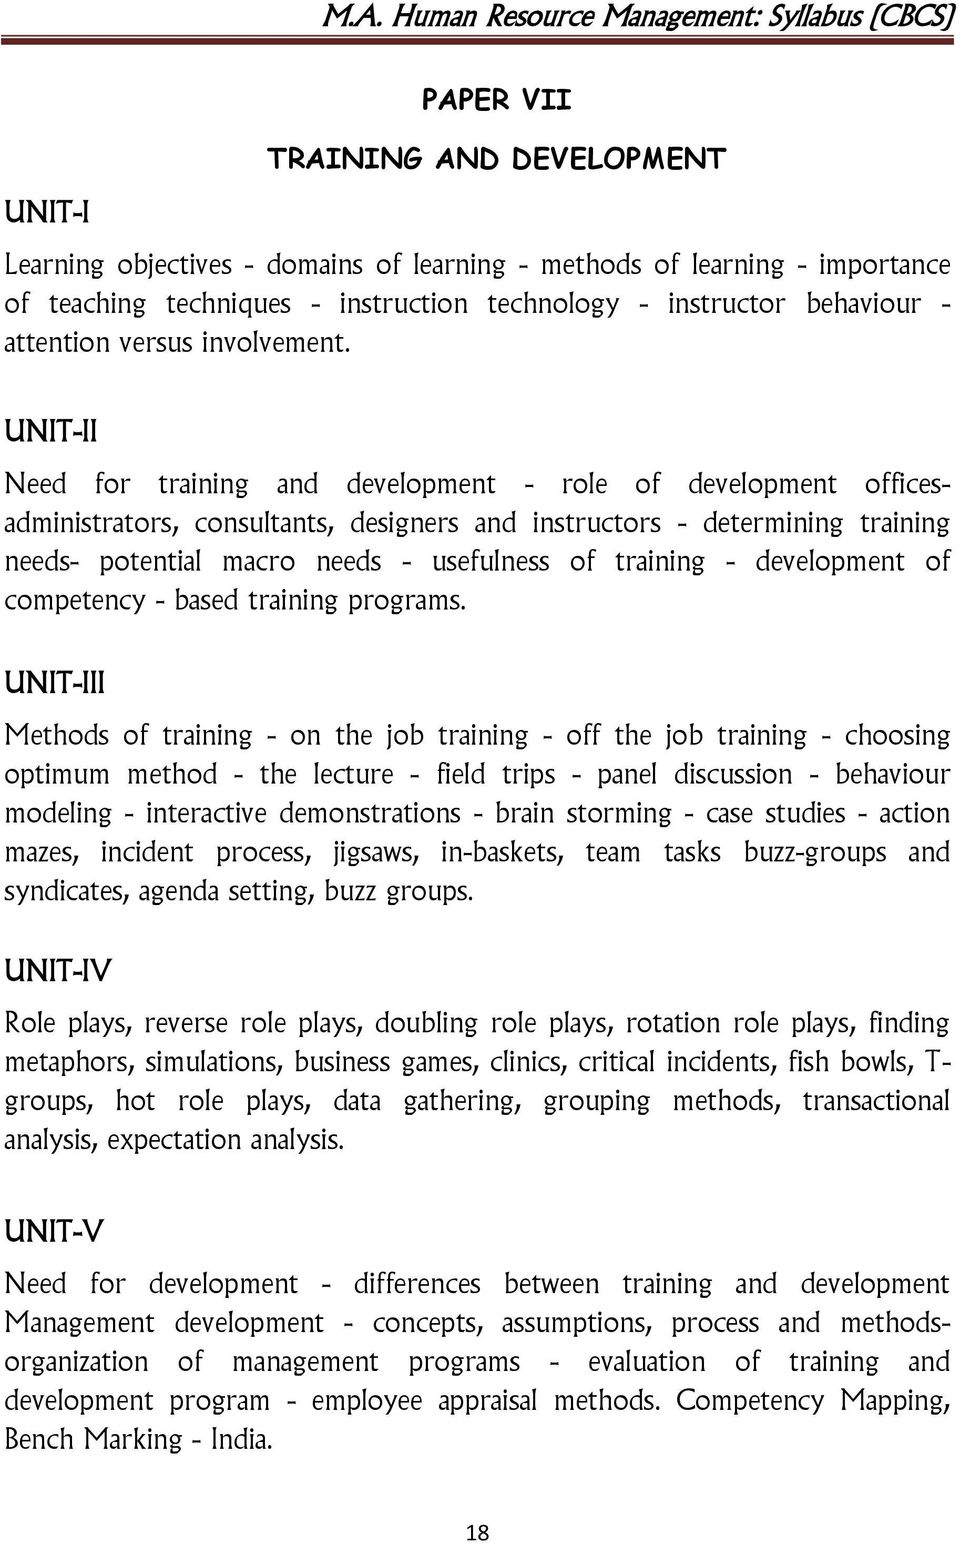 UNIT-II Need for training and development - role of development officesadministrators, consultants, designers and instructors - determining training needs- potential macro needs - usefulness of